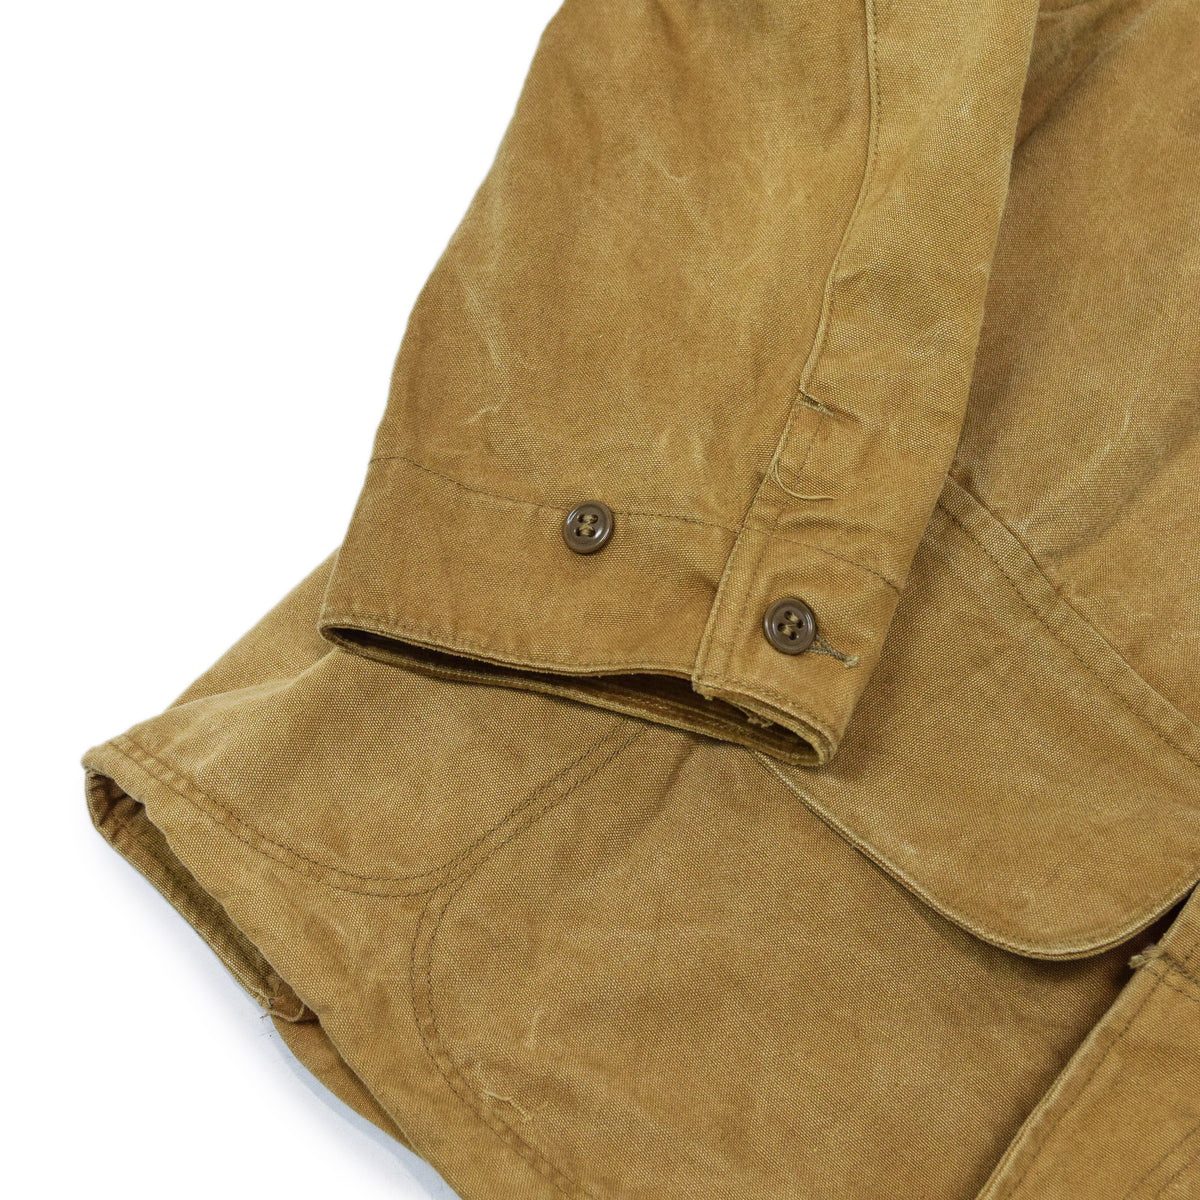 Vintage 1930s Mohawk Duxbak NY Hunting Tan Canvas Shooting Field Jacket S / M CUFF DETAIL